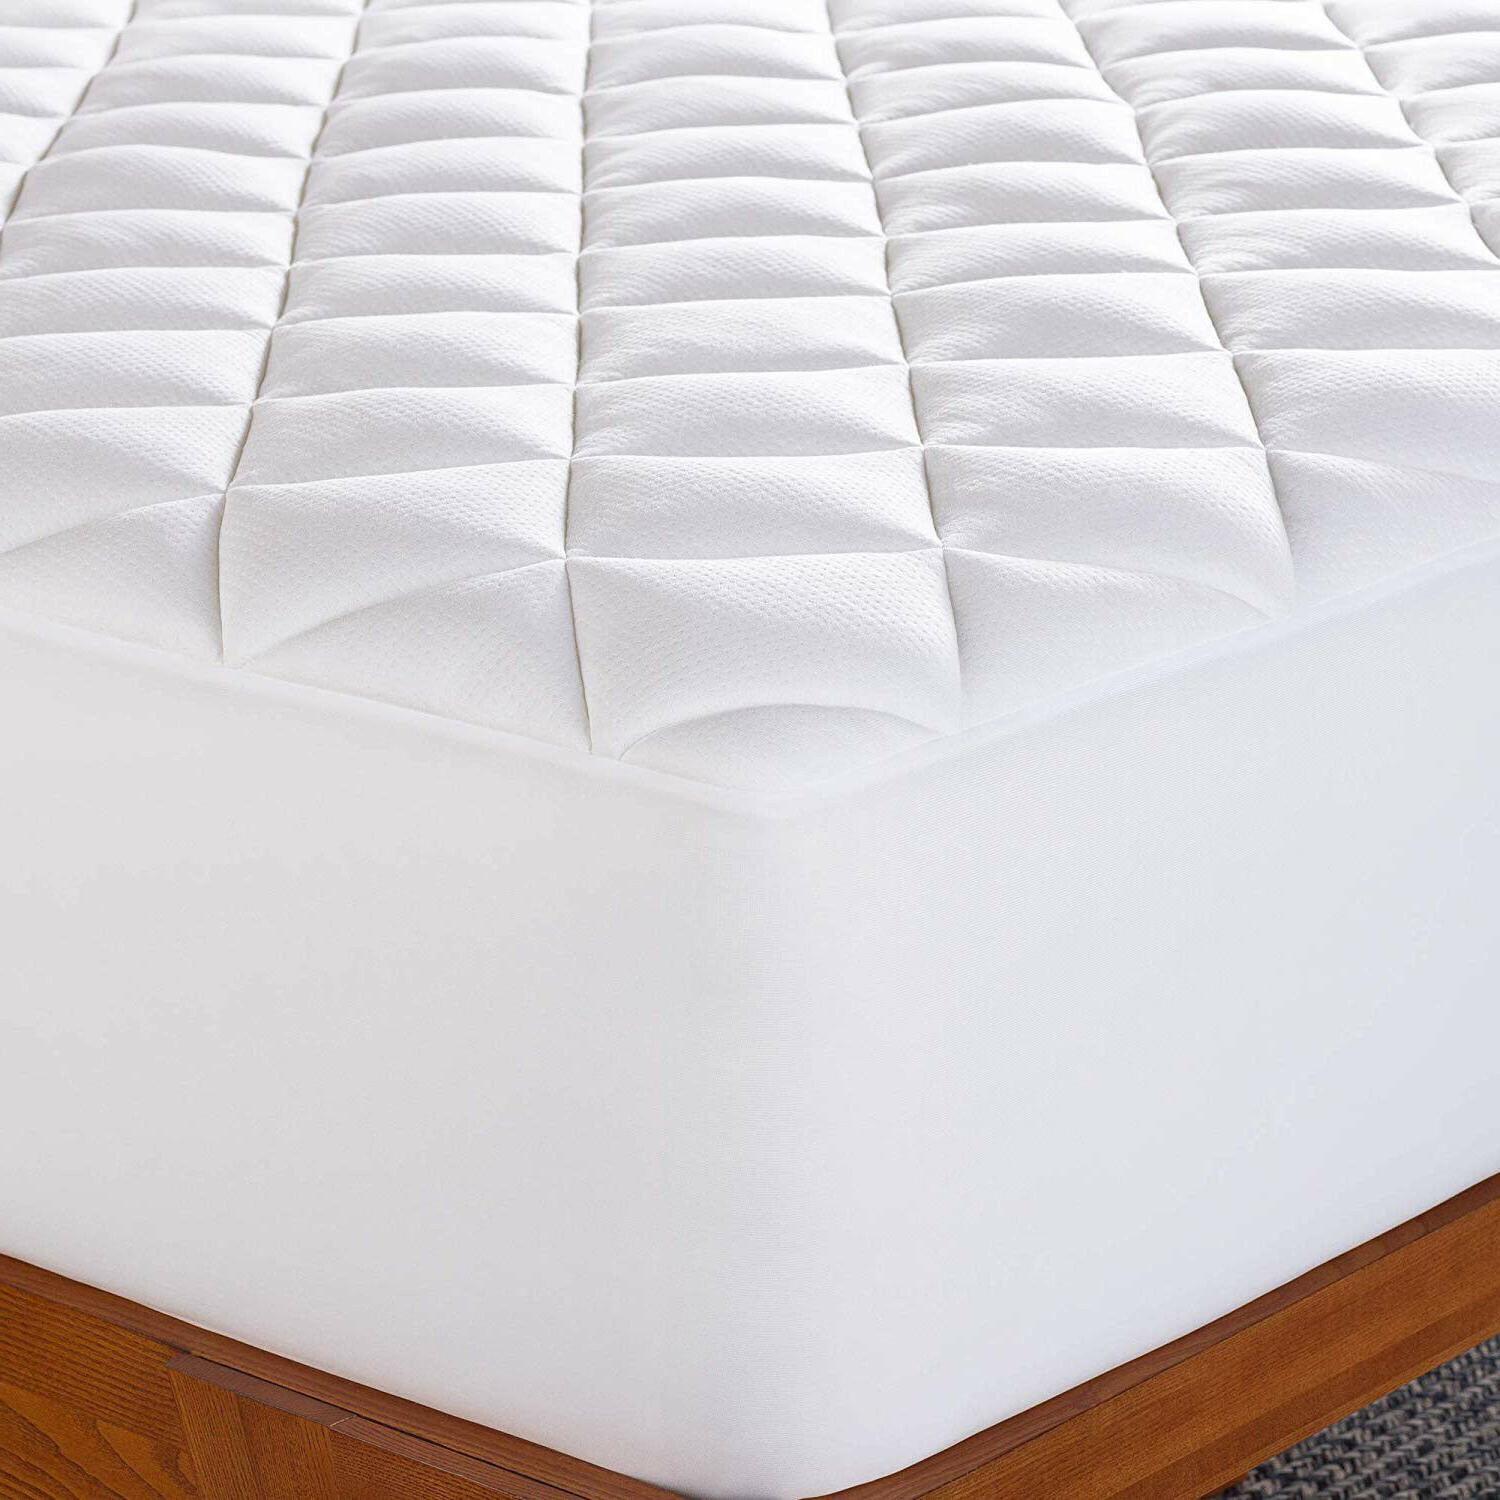 Cooling Bamboo Pad Ultra-Plush Breathable Mattress Topper